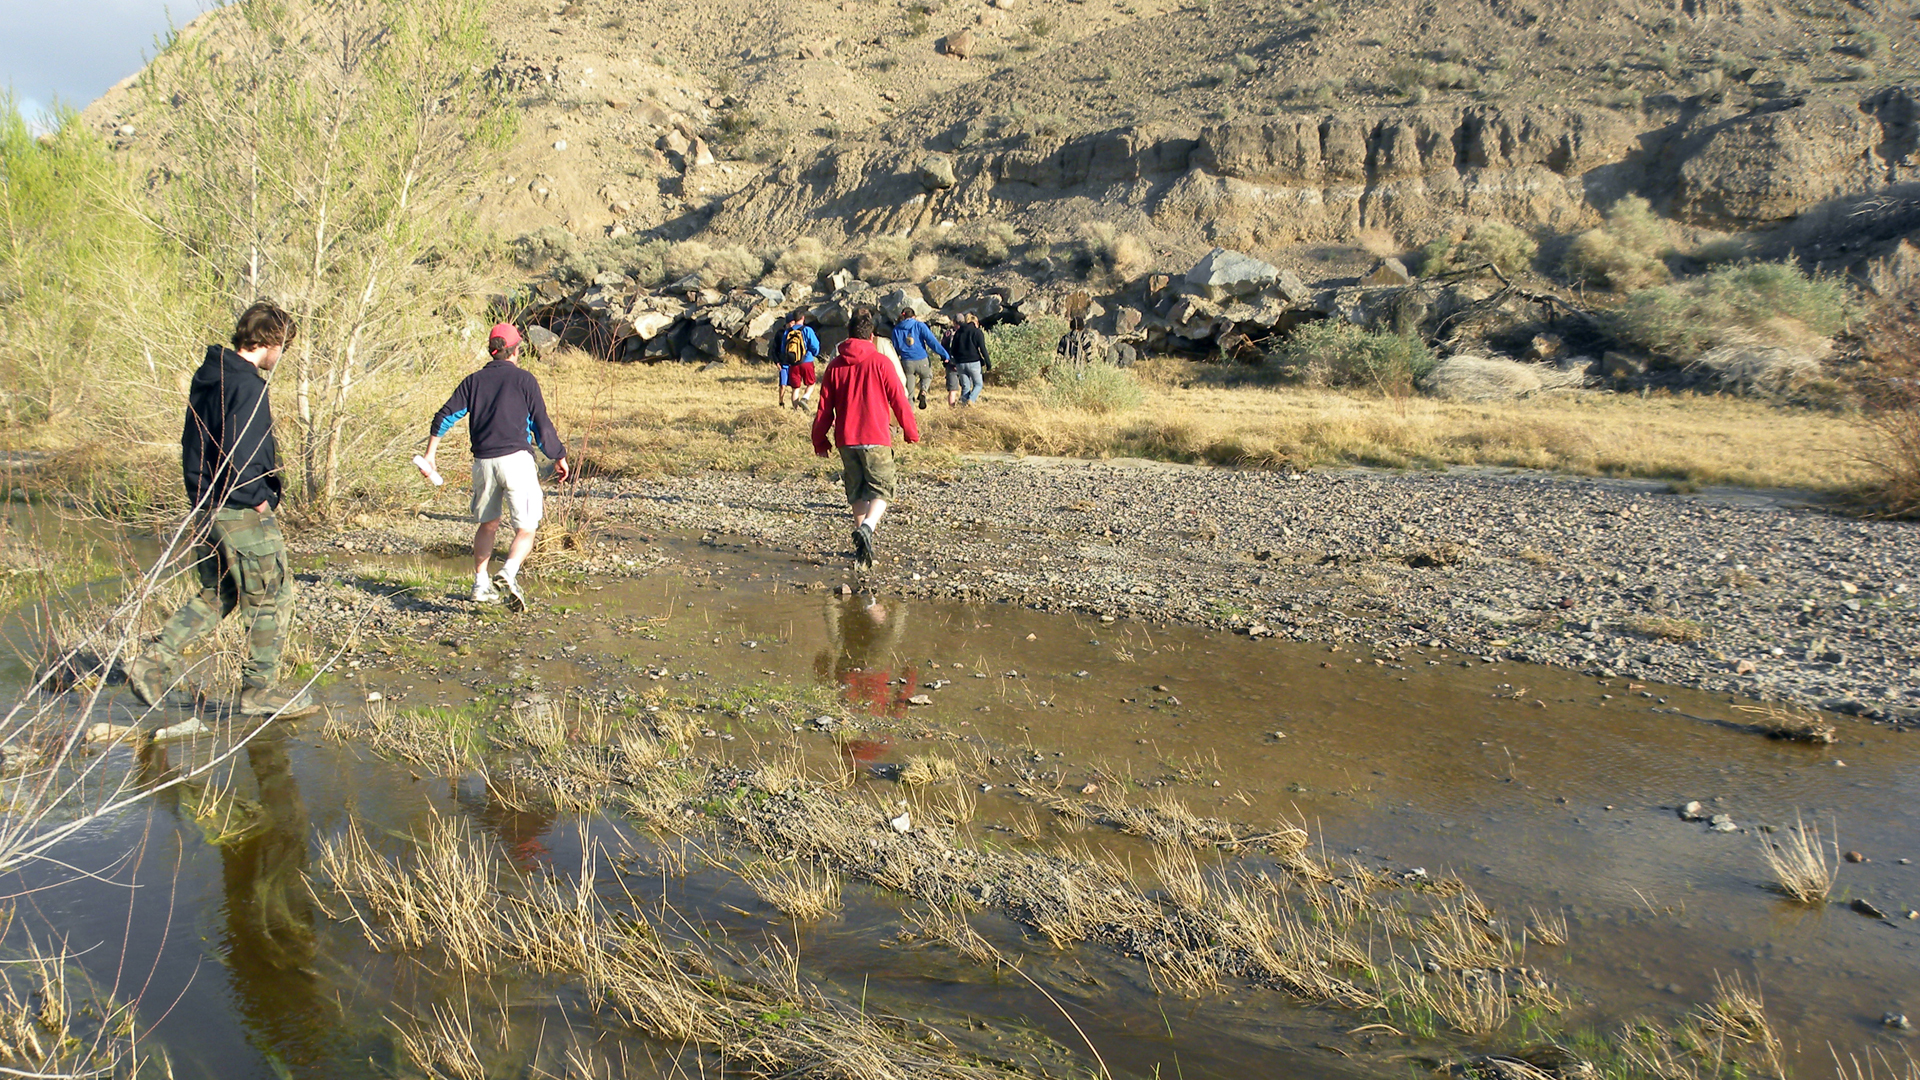 People walk across the Mojave River near Afton Canyon in March 2010. (Credit: Mark A. Wilson / Wikimedia Commons)